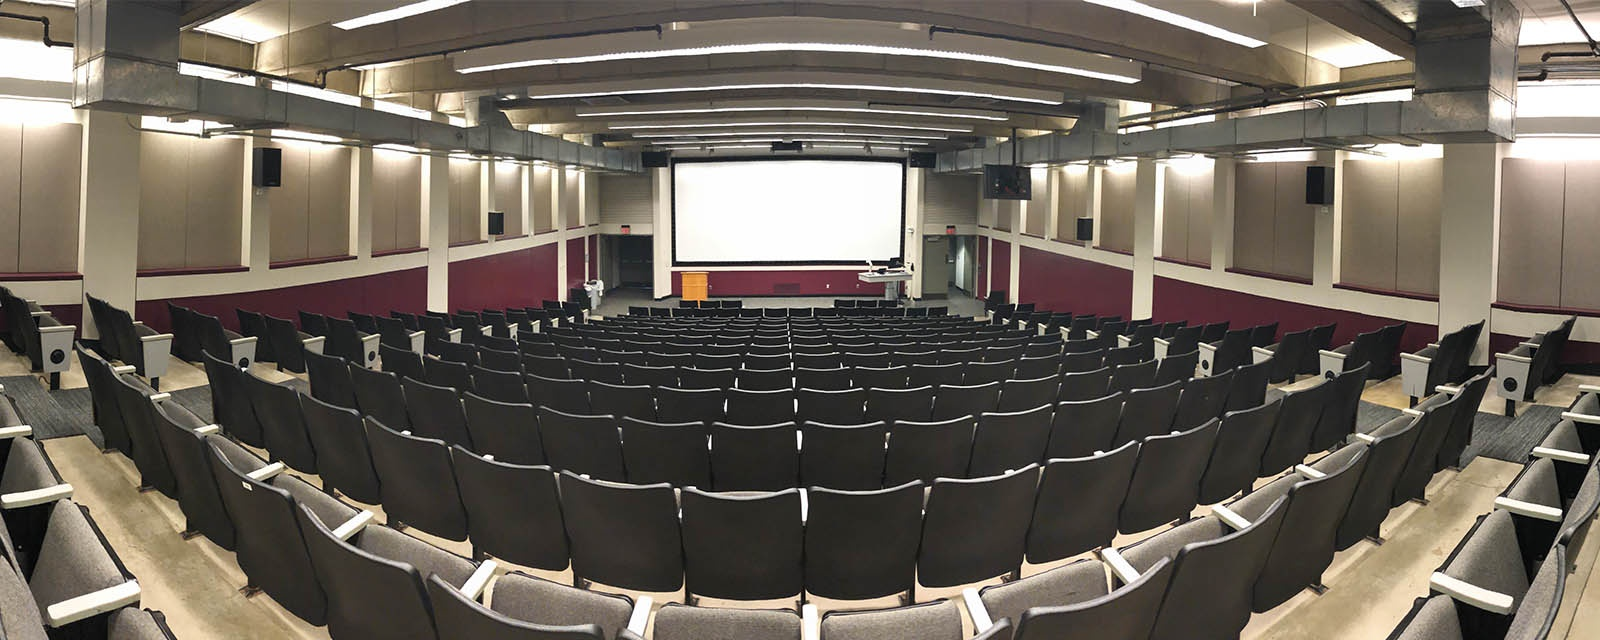 Panorama Shaffer Shemin Auditorium from back, stadium seating, teaching station front left of room to front of room